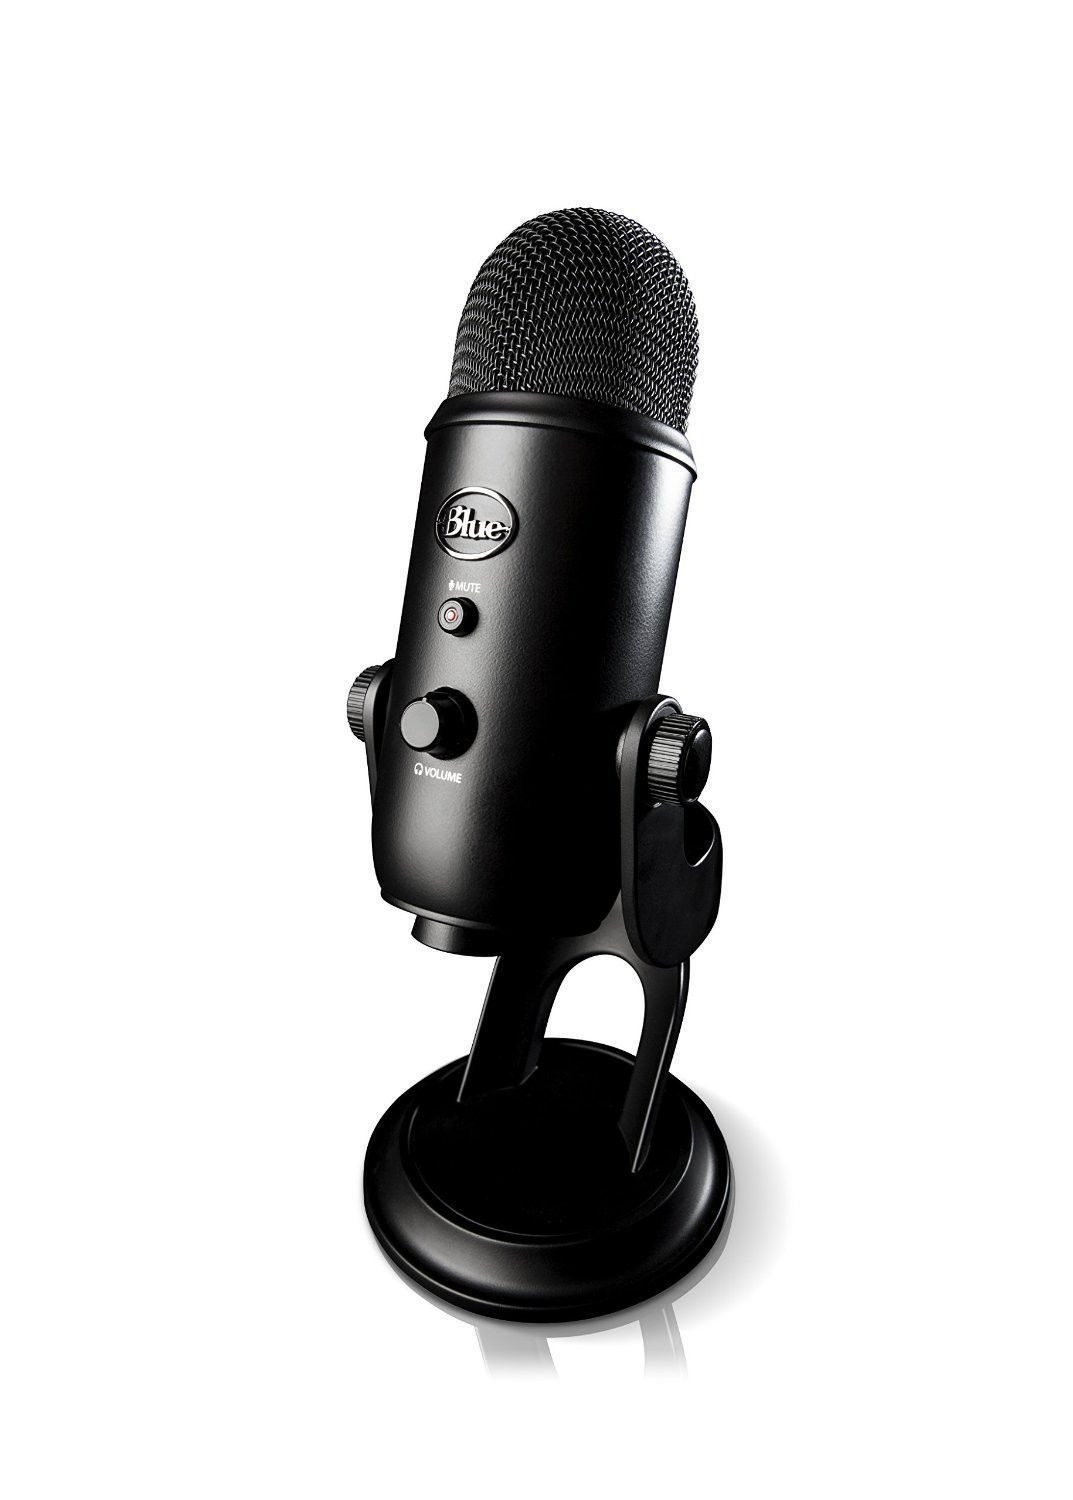 blue yeti multi pattern usb mic for recording streaming in 2019 podcast life blue yeti usb. Black Bedroom Furniture Sets. Home Design Ideas